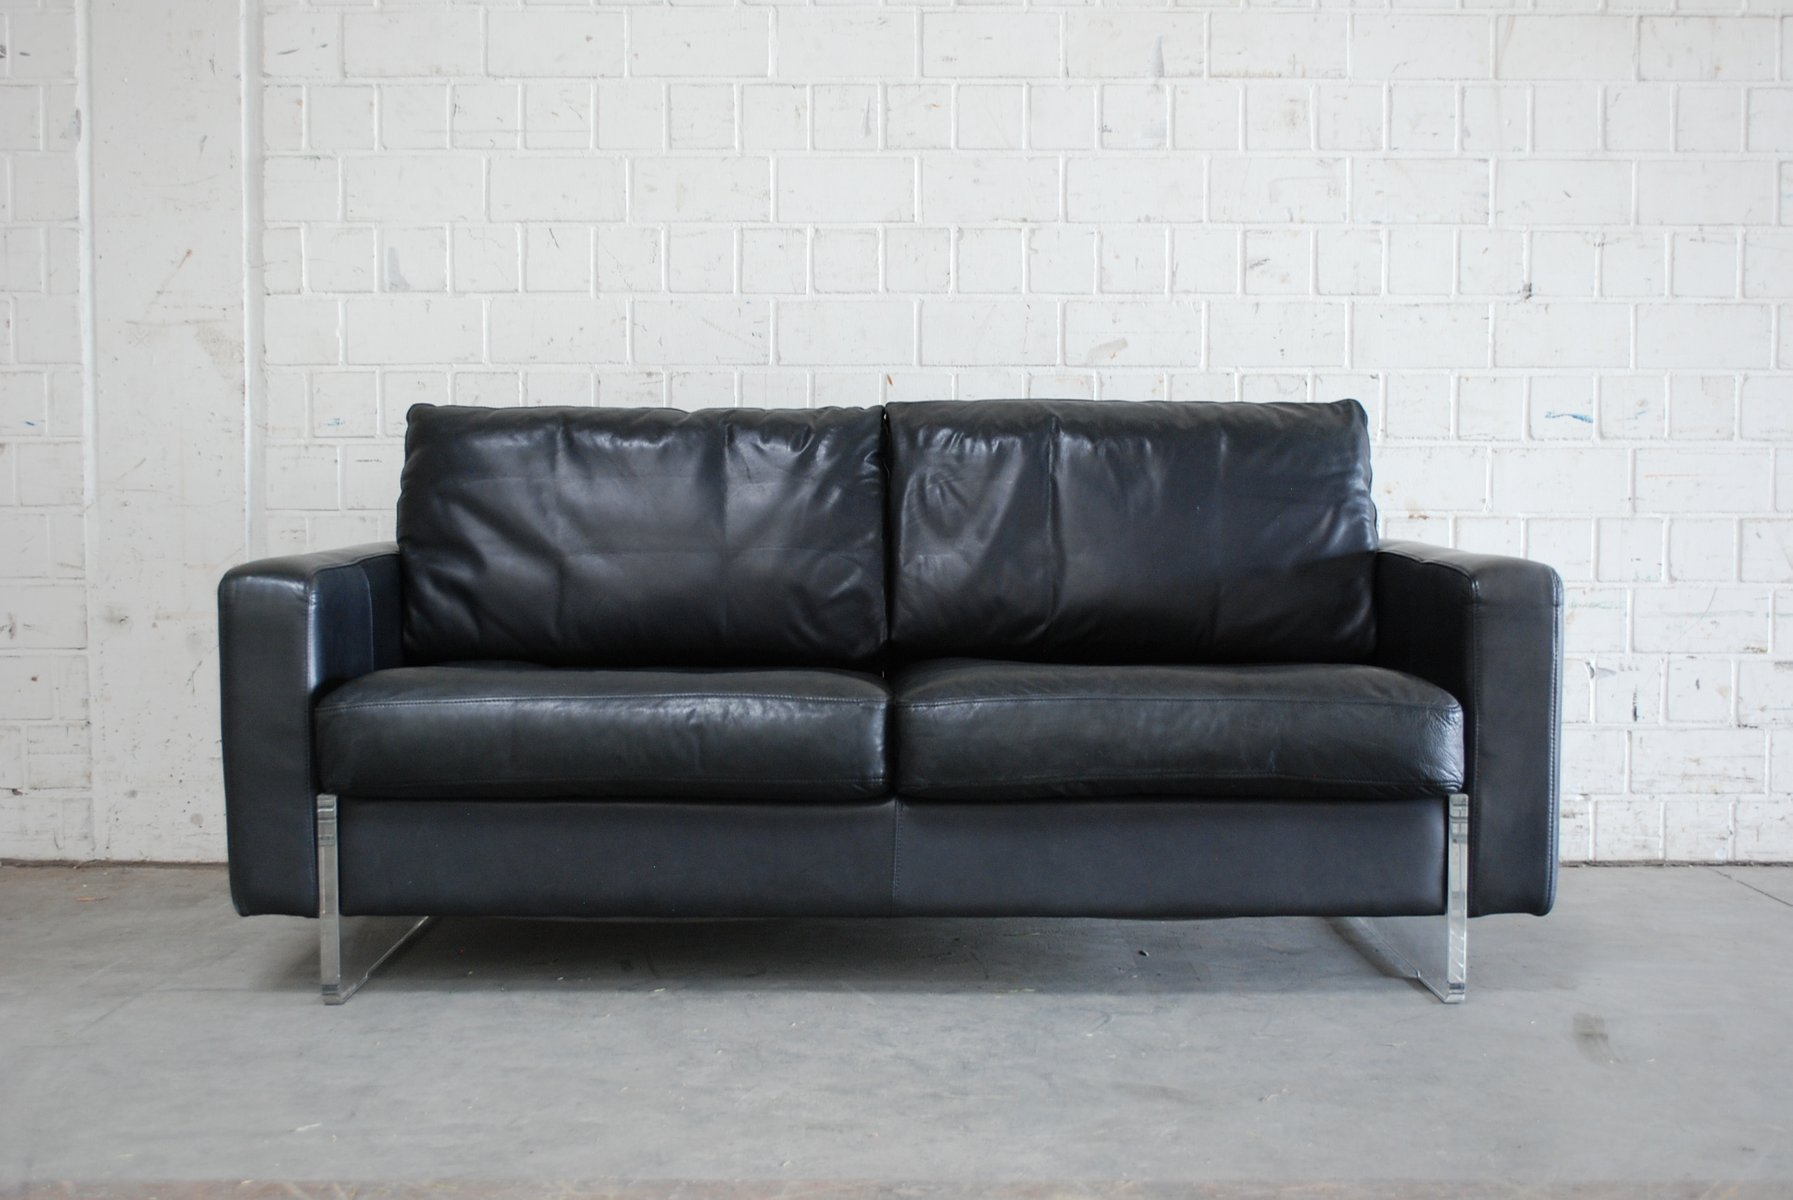 Vintage black leather sofa from lavalina for sale at pamono for Black leather sectional sofa uk